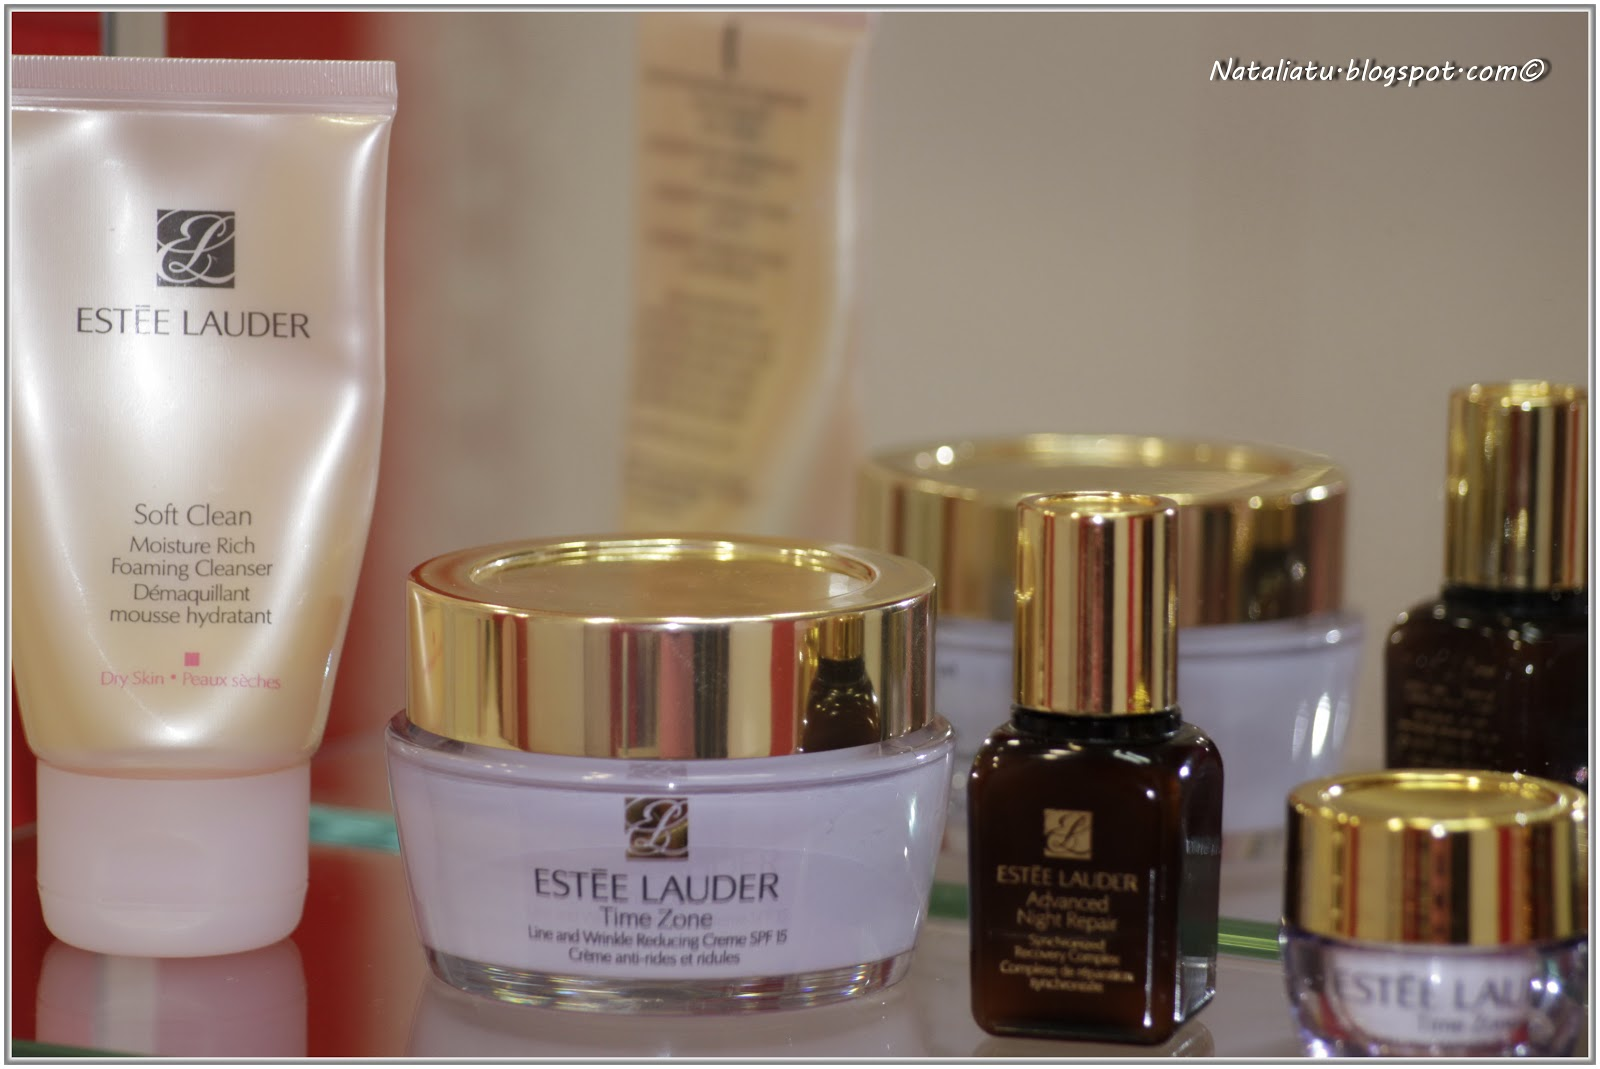 LifeУход Time Zone Lauder От Beauty Estee E2WDHI9Y